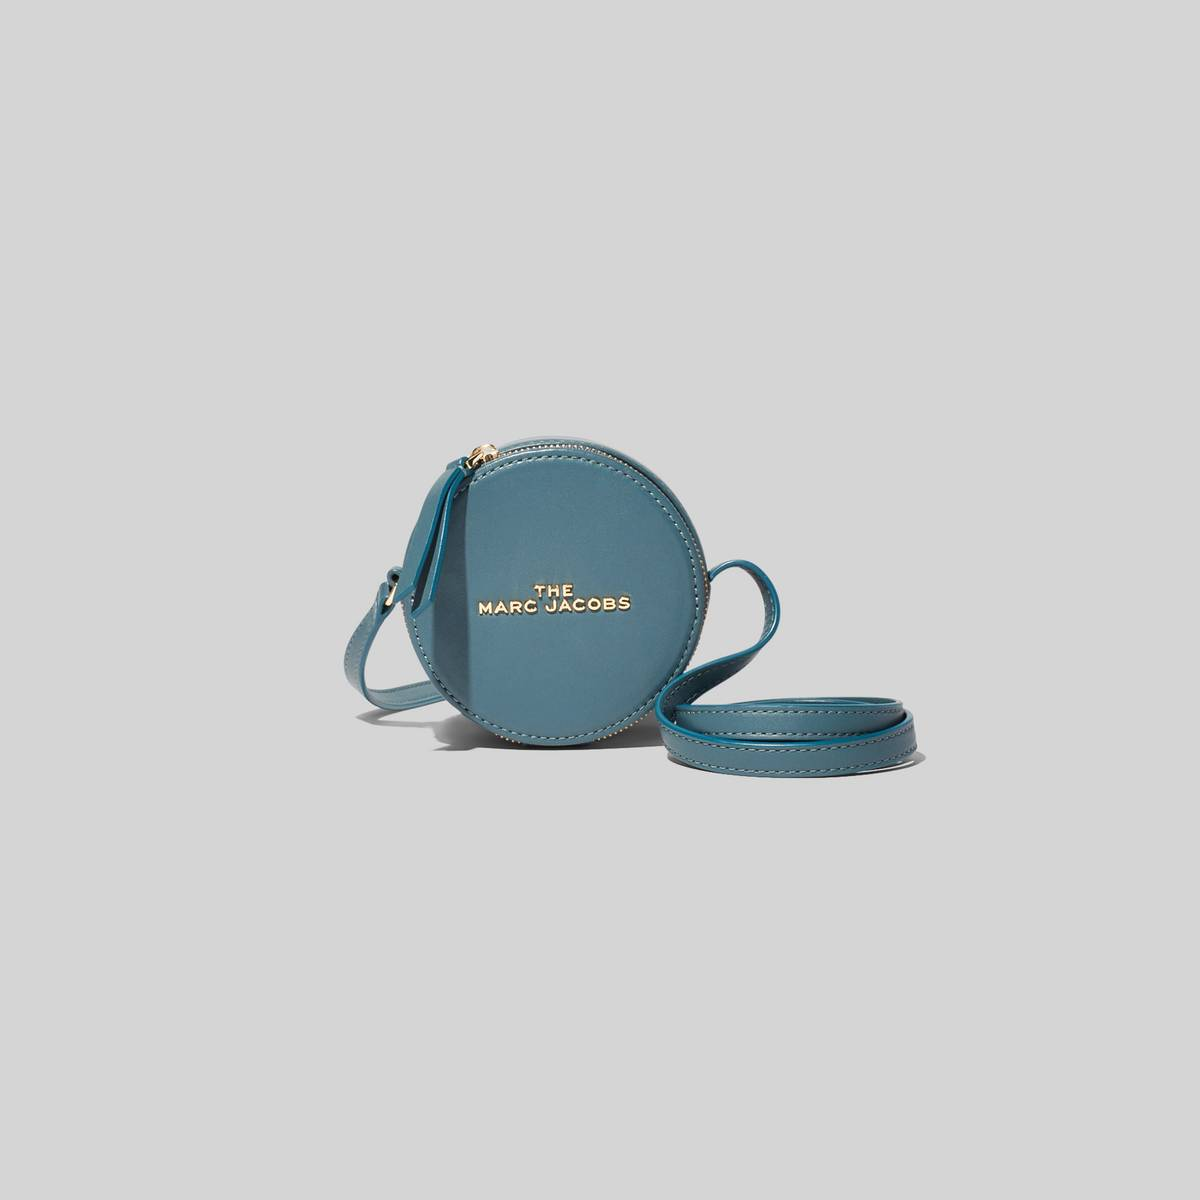 A mini bag that\\'s spot on. Use it to carry cash, AirPods, mintsany and all the small items you love. | MARC JACOBS Women\\'s The Hot Spot in Armory Blue